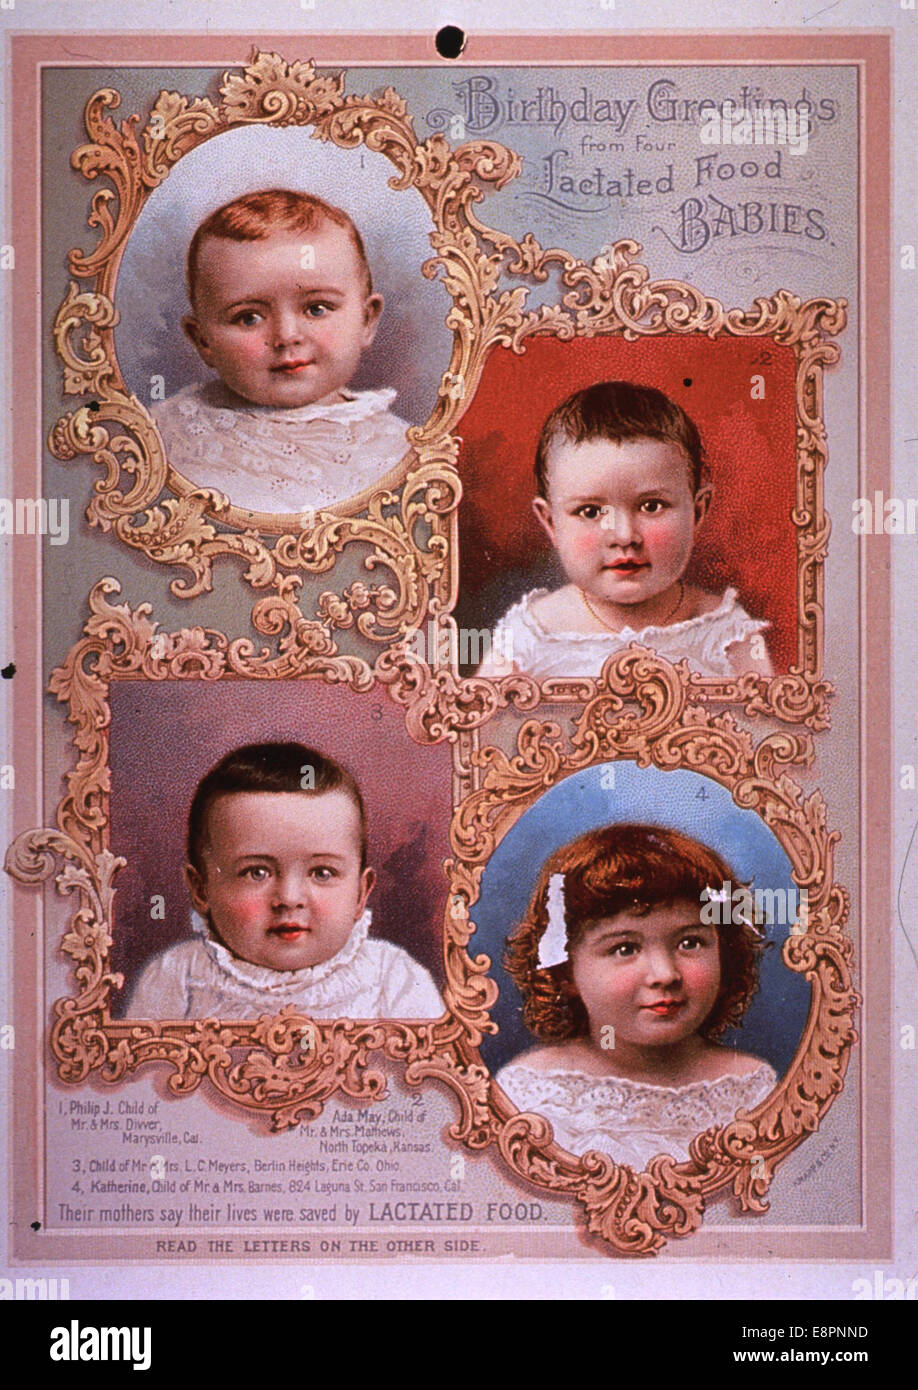 Birthday Greetings from Four Lactated Food Babies - Stock Image